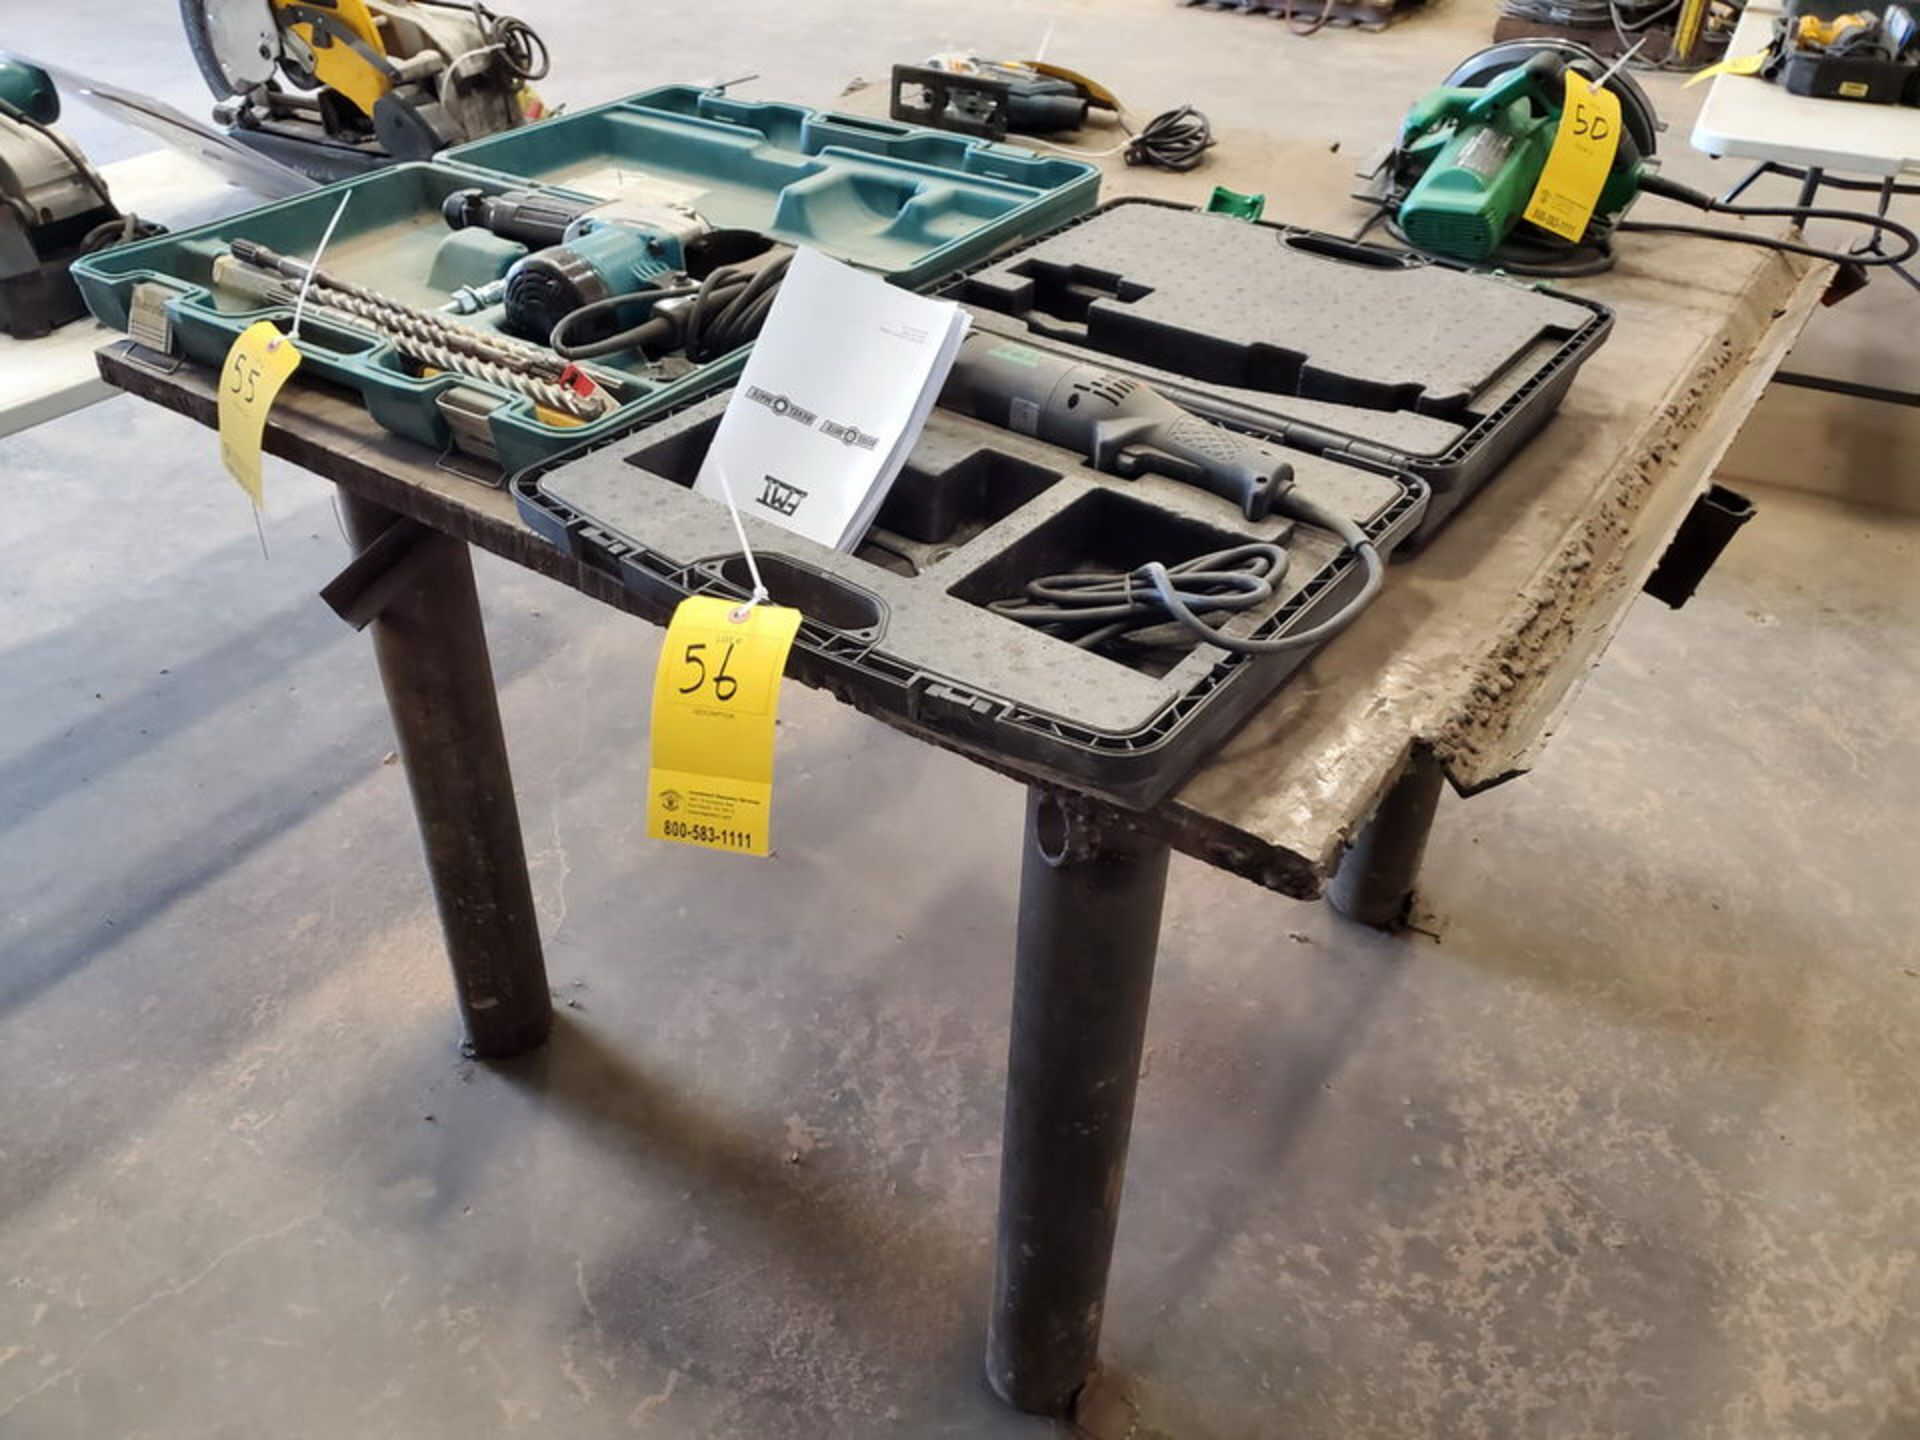 """(2) Stl Welding Tables (1) 72"""" x 72"""" x 37'H; (1) 51"""" x 54"""" x 37""""H - Image 7 of 8"""